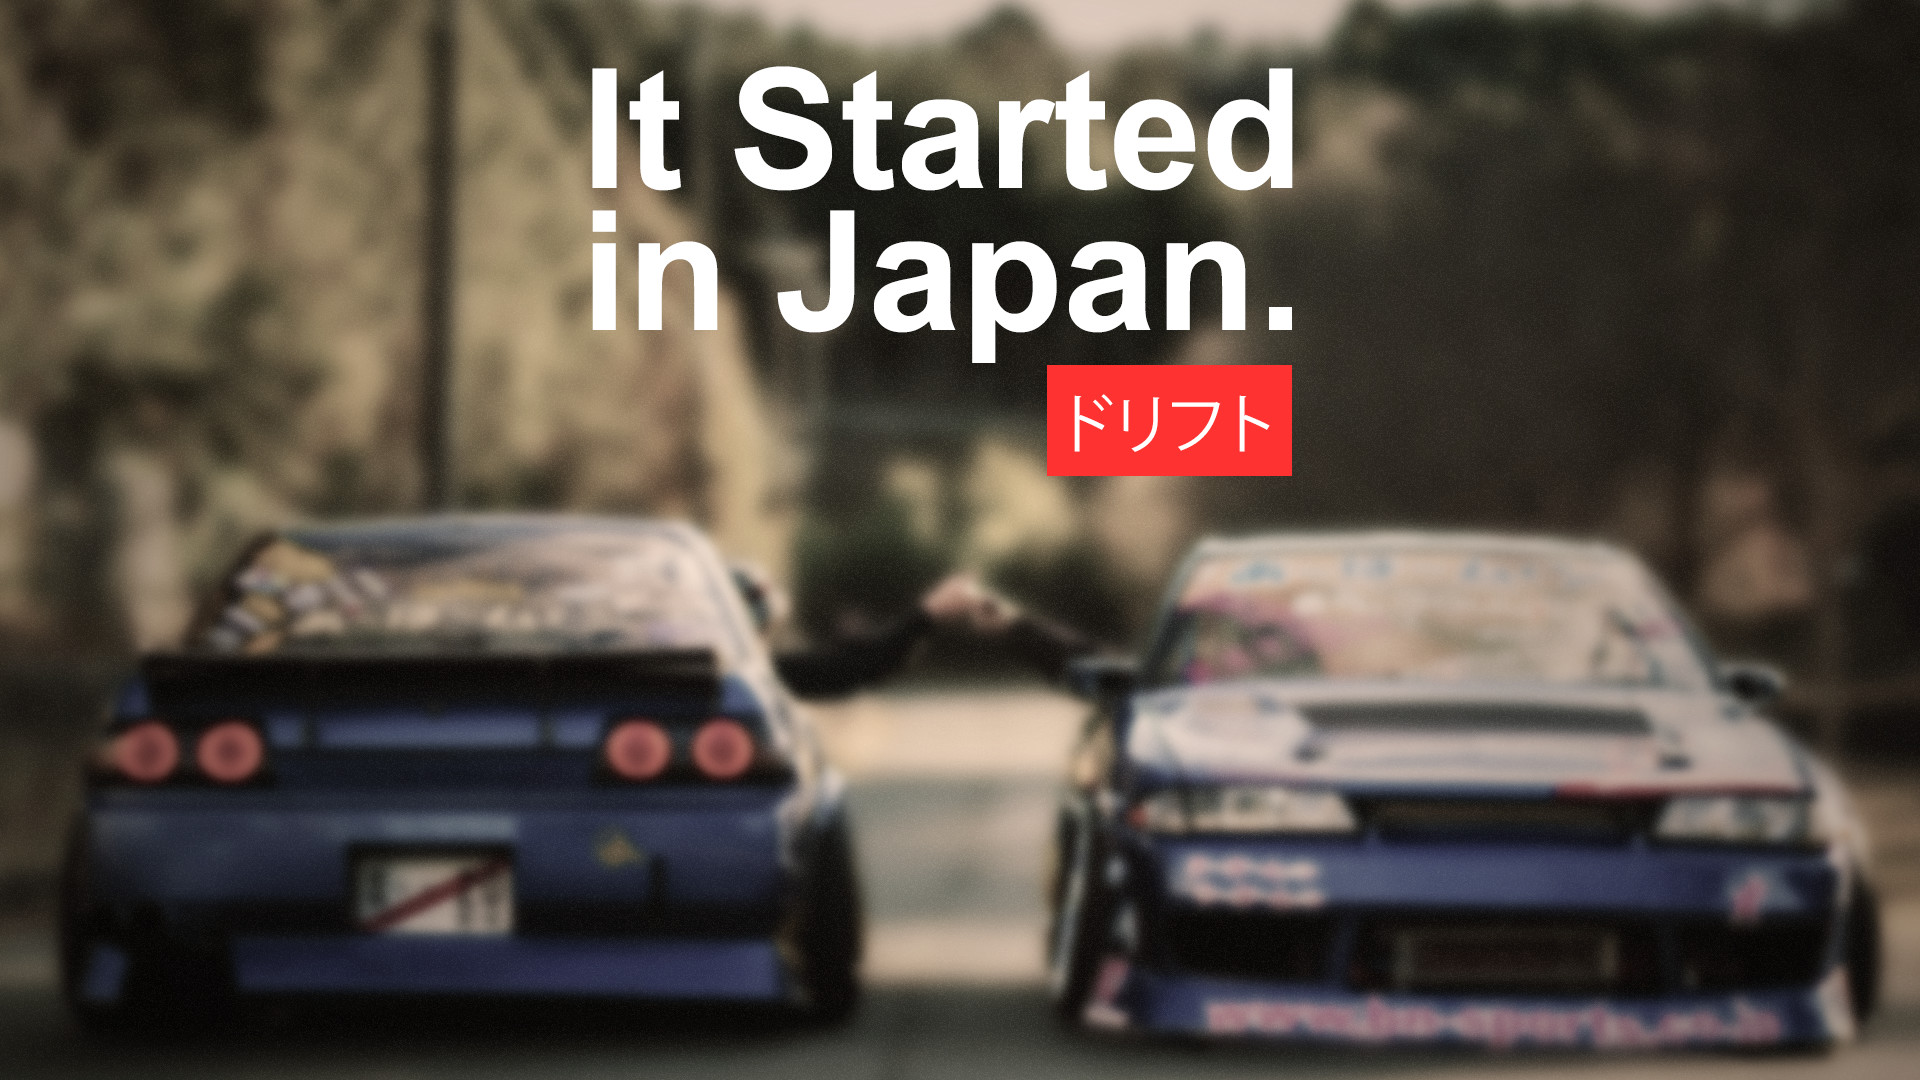 1920x1080 General  car Japan drift Drifting racing vehicle Japanese cars  import tuning modified skyline Nissan Nissan